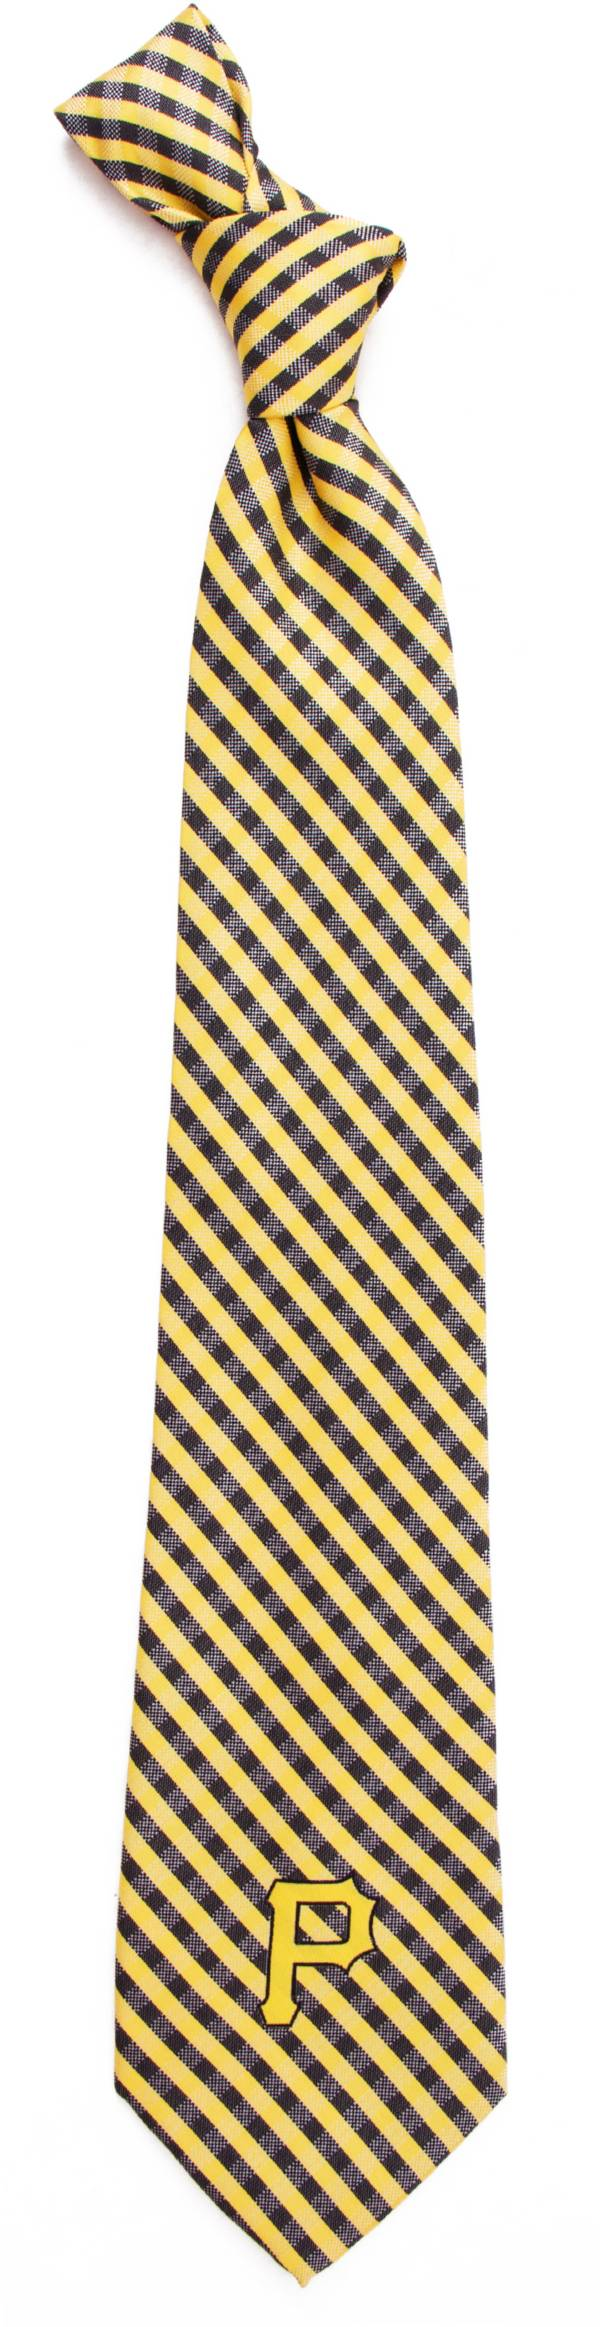 Eagles Wings Pittsburgh Pirates Gingham Necktie product image